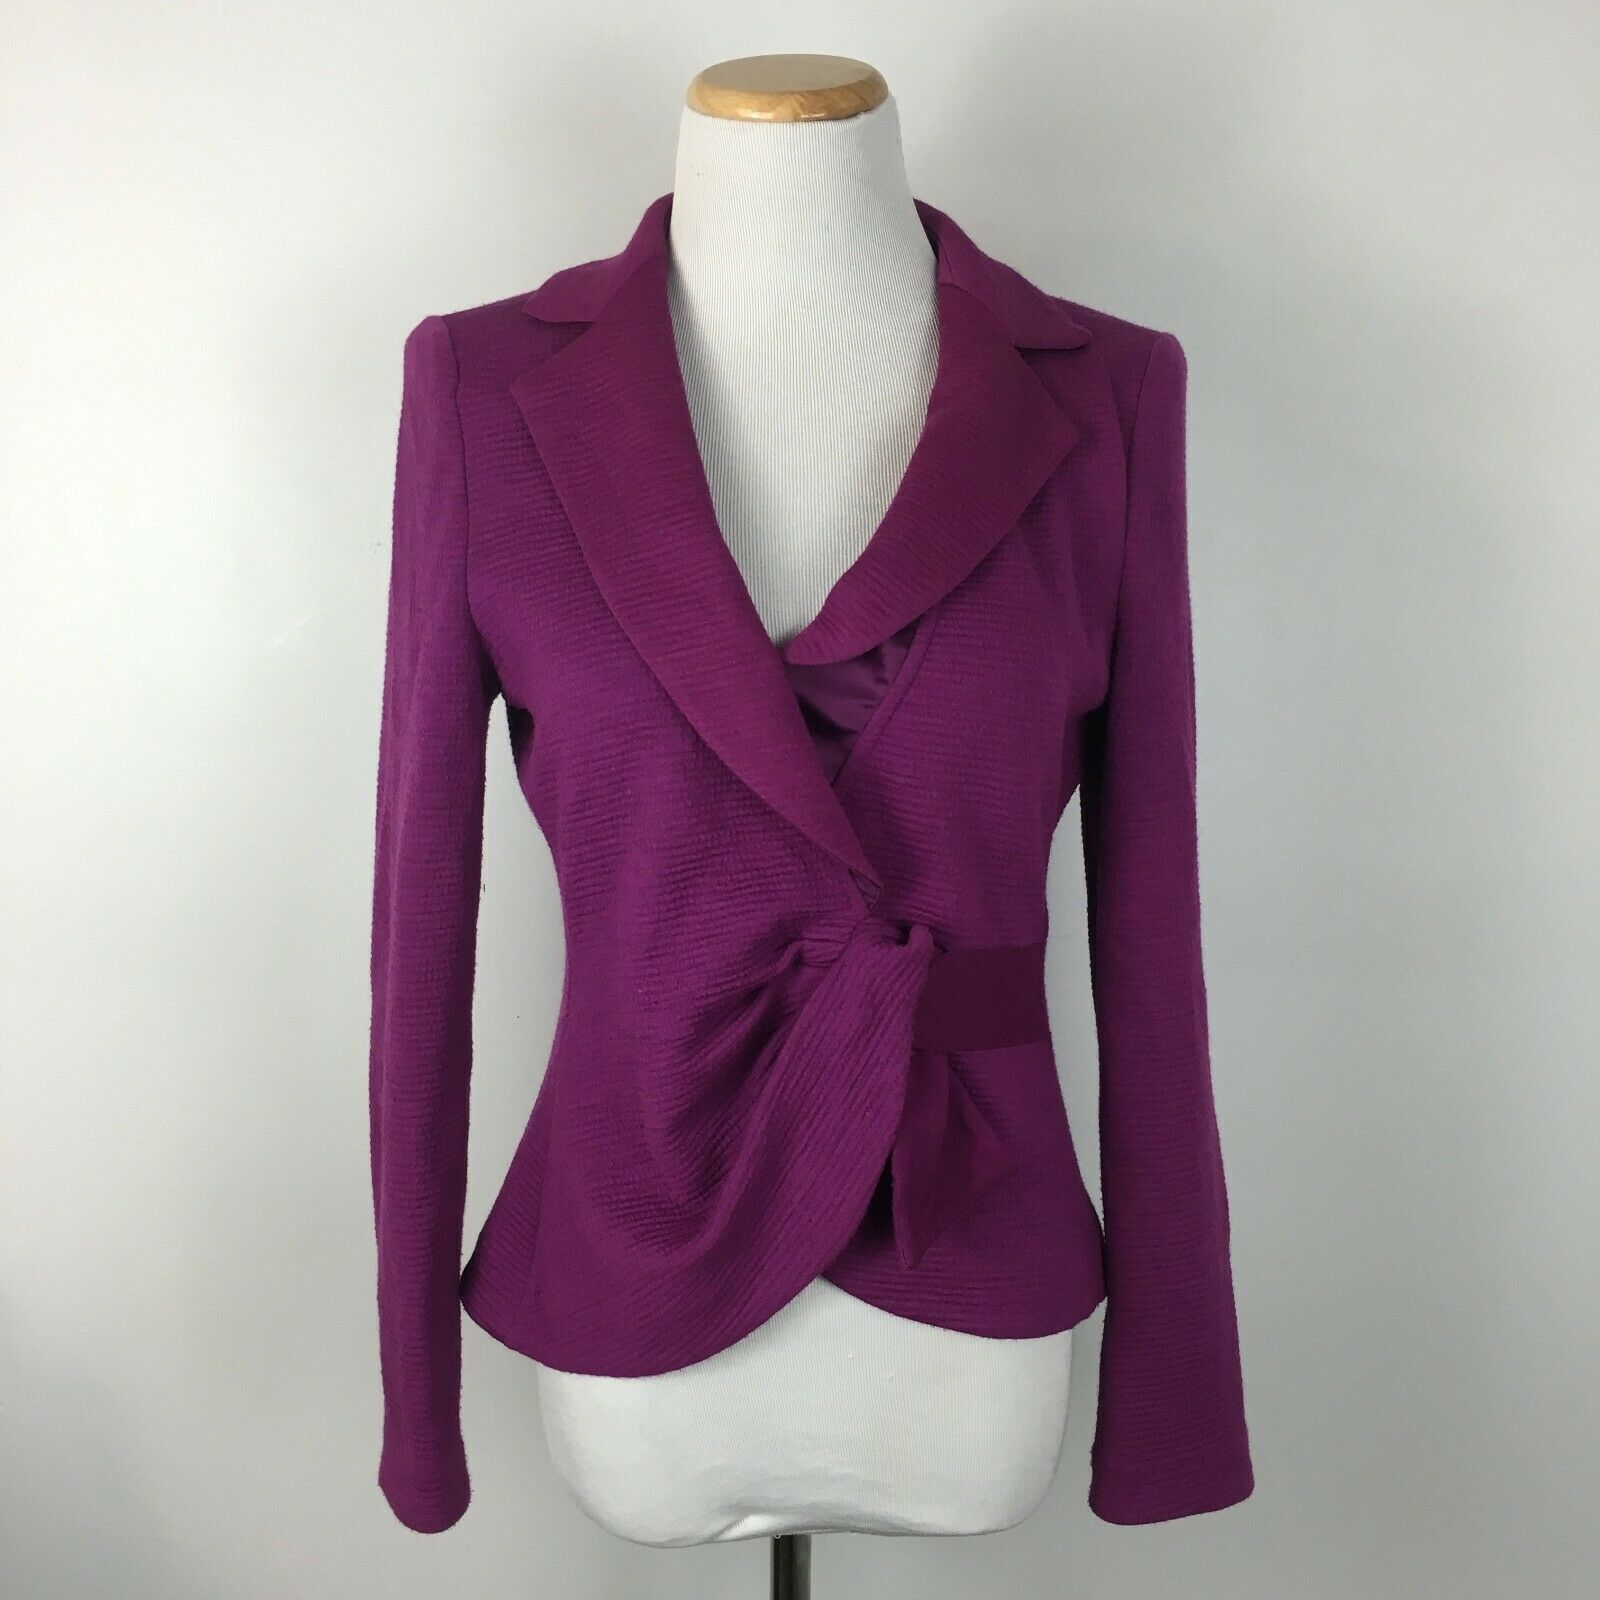 Armani Collezioni Women's Purple Knit Soft Tie Front Blazer Jacket Size 6